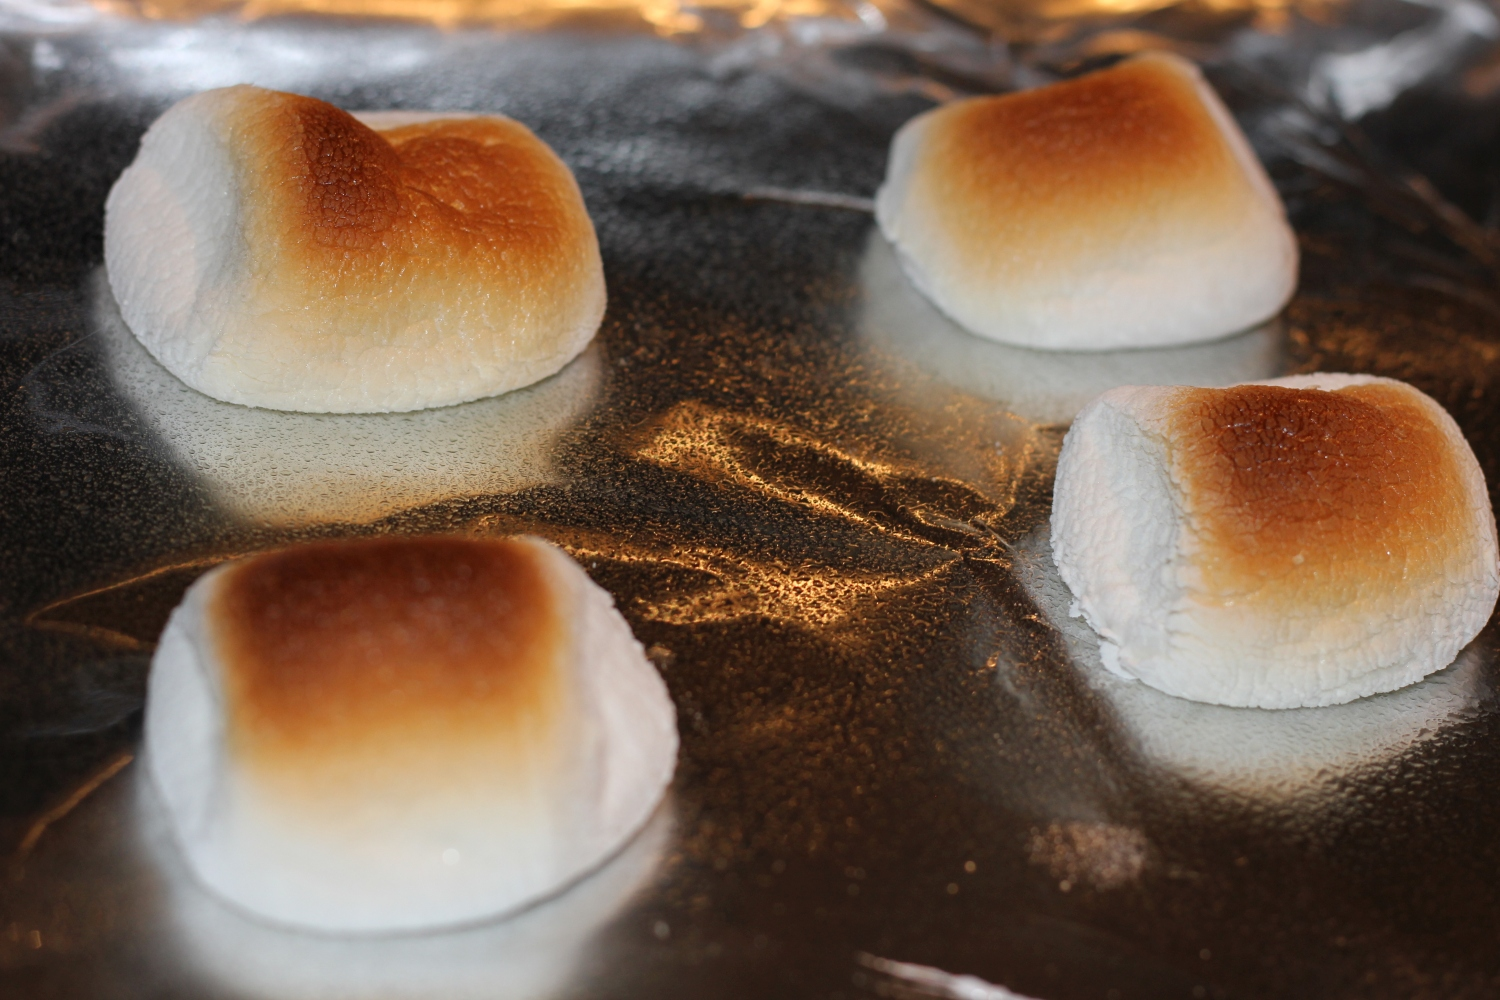 Baked Peanut Butter Smores